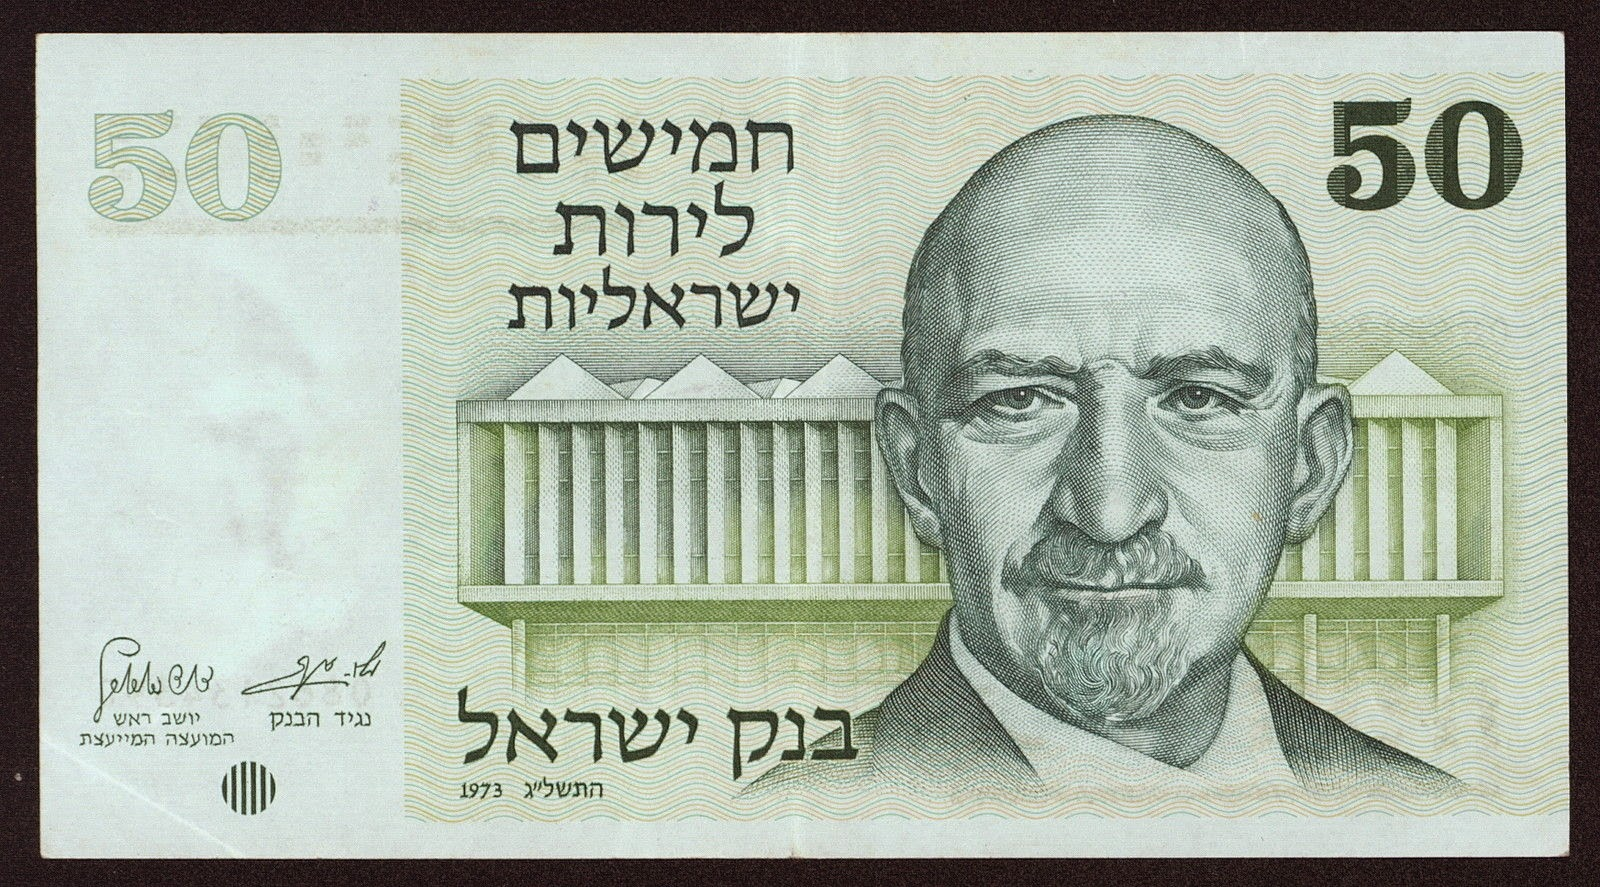 Israel currency notes 50 Lirot banknote 1973 Chaim Weizmann